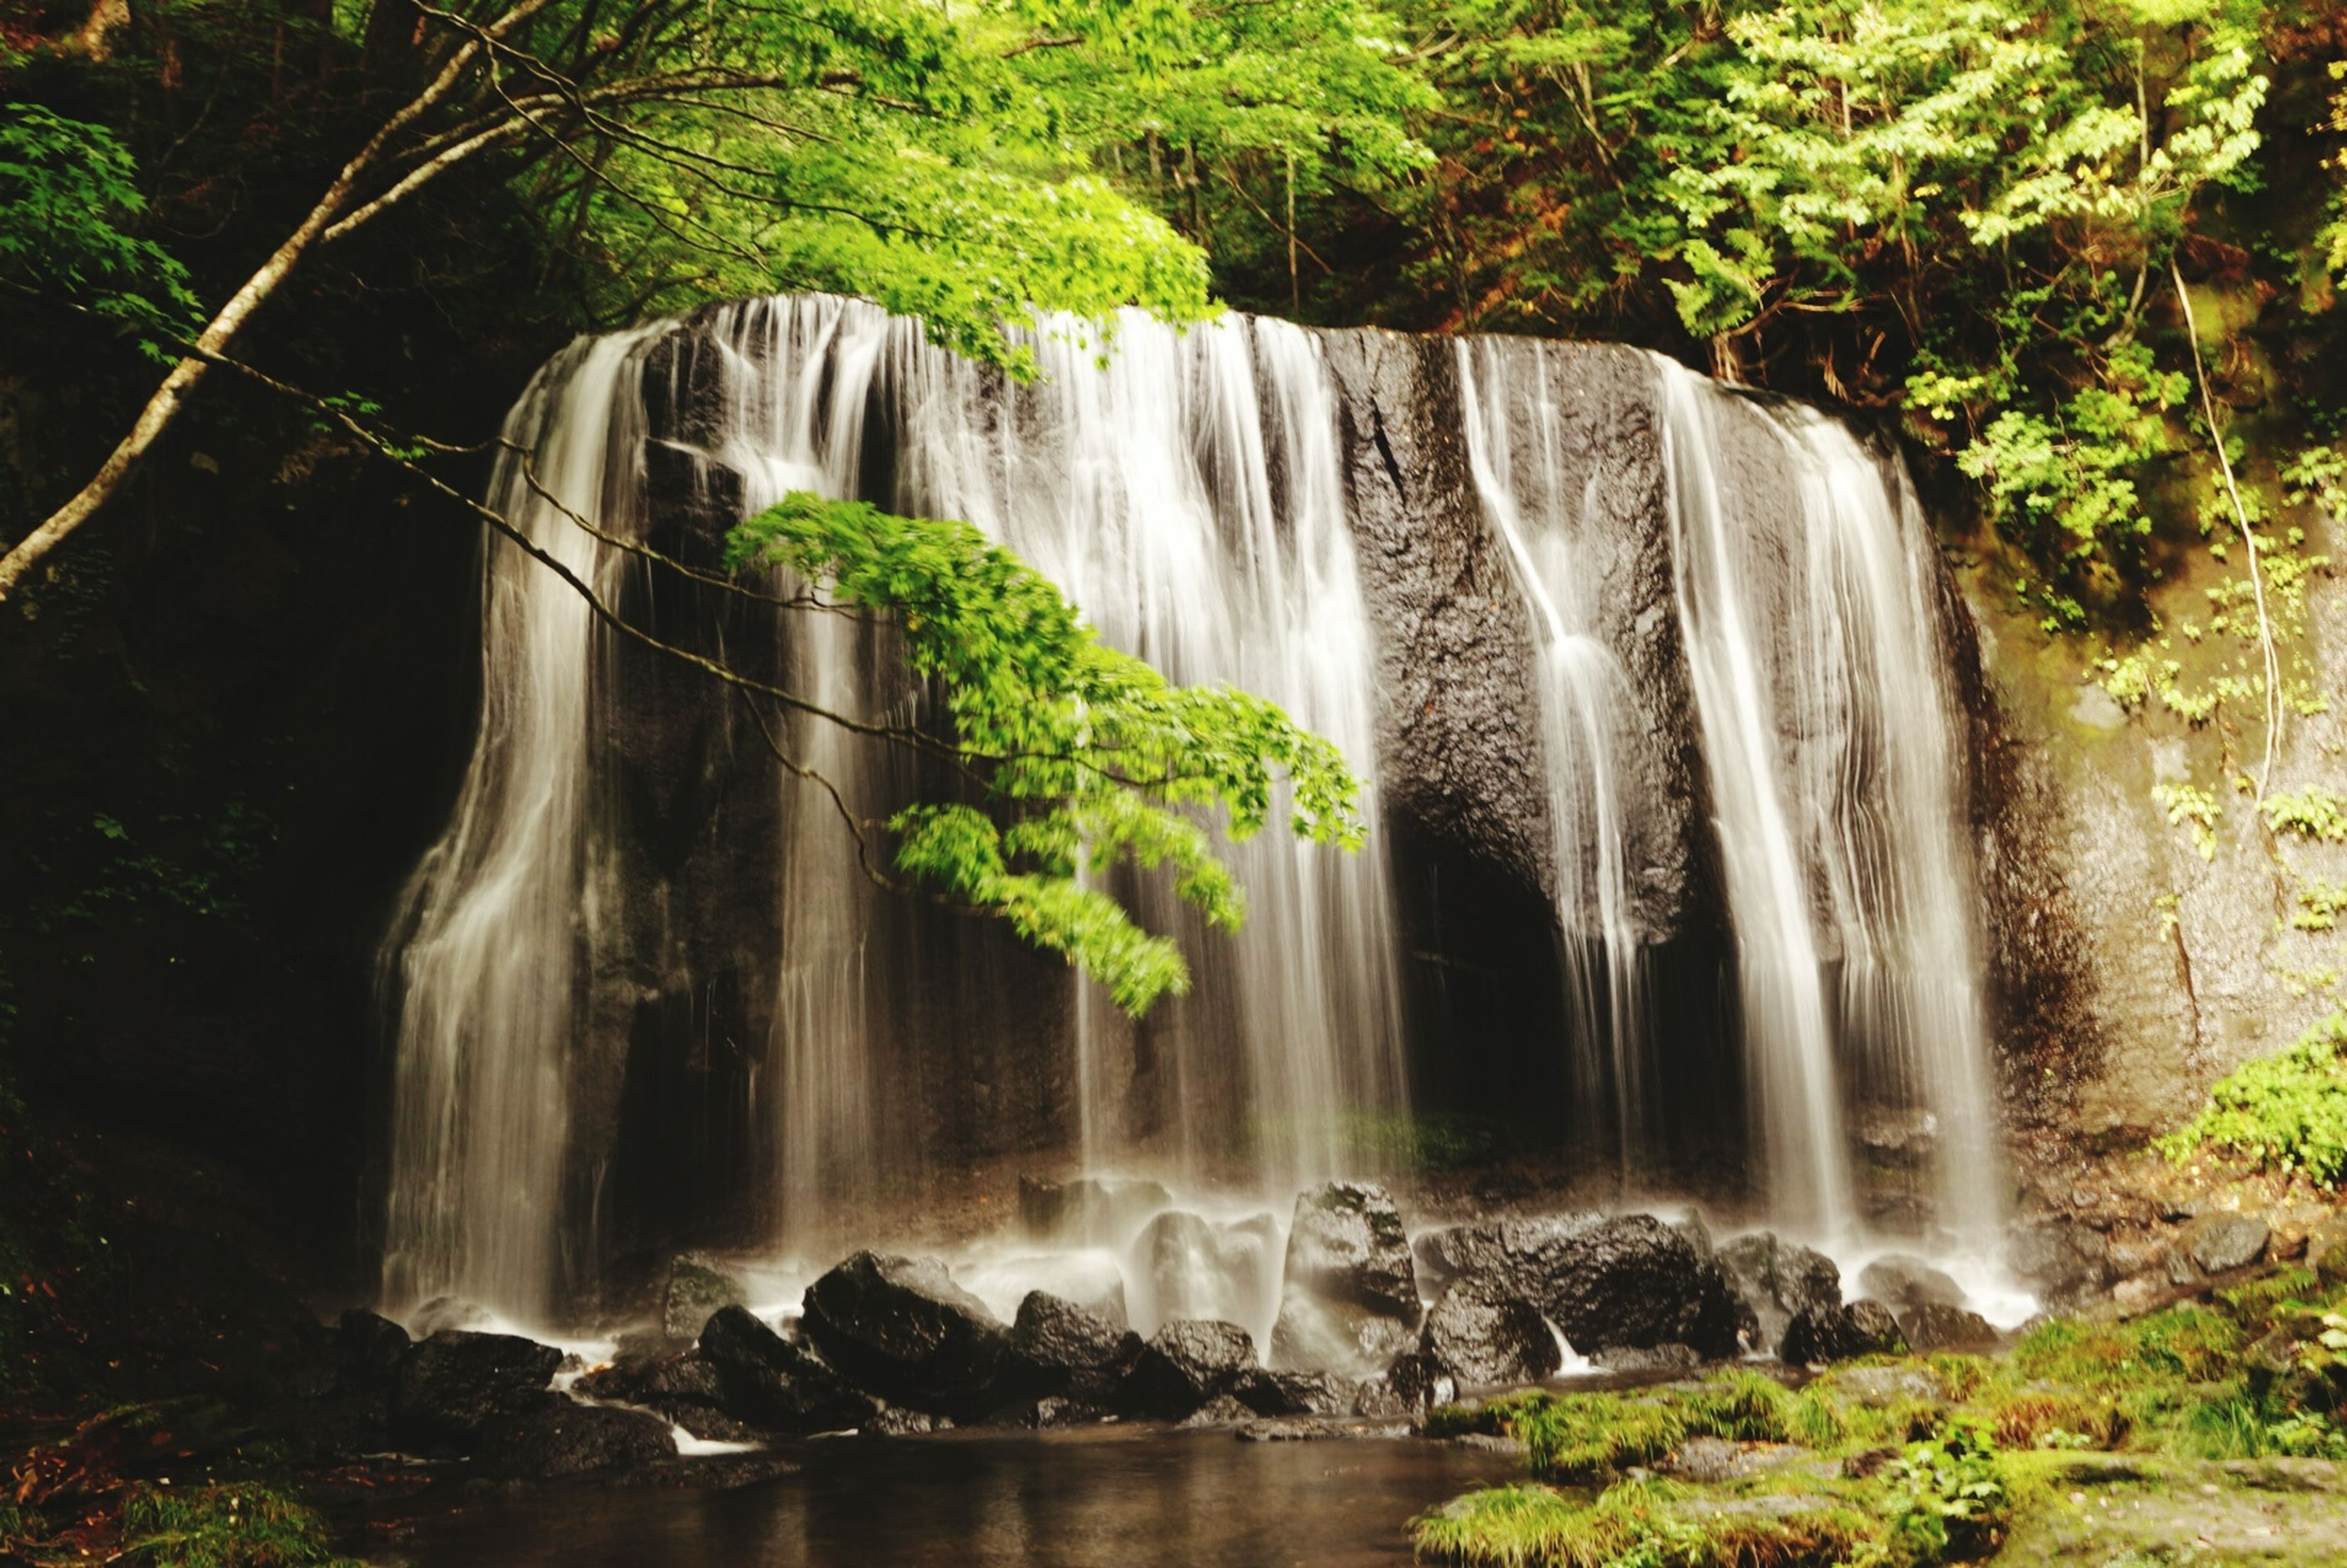 waterfall, motion, water, long exposure, flowing water, flowing, beauty in nature, tree, forest, scenics, rock - object, blurred motion, nature, splashing, environment, power in nature, idyllic, rock formation, plant, day